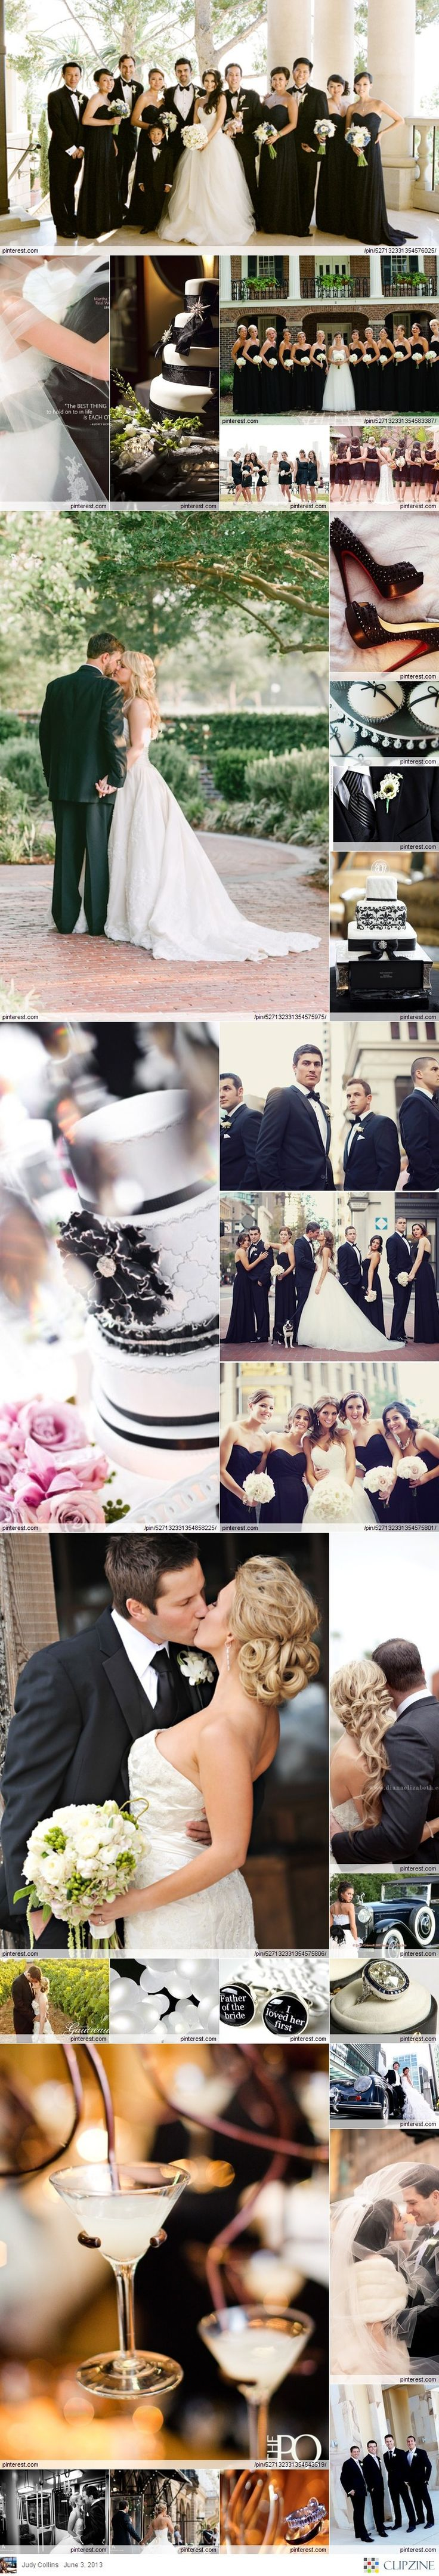 #black & white wedding ... Wedding ideas for brides, grooms, parents & planners ... https://itunes.apple.com/us/app/the-gold-wedding-planner/id498112599?ls=1=8 … plus how to organise an entire wedding, without overspending ♥ The Gold Wedding Planner iPhone App ♥